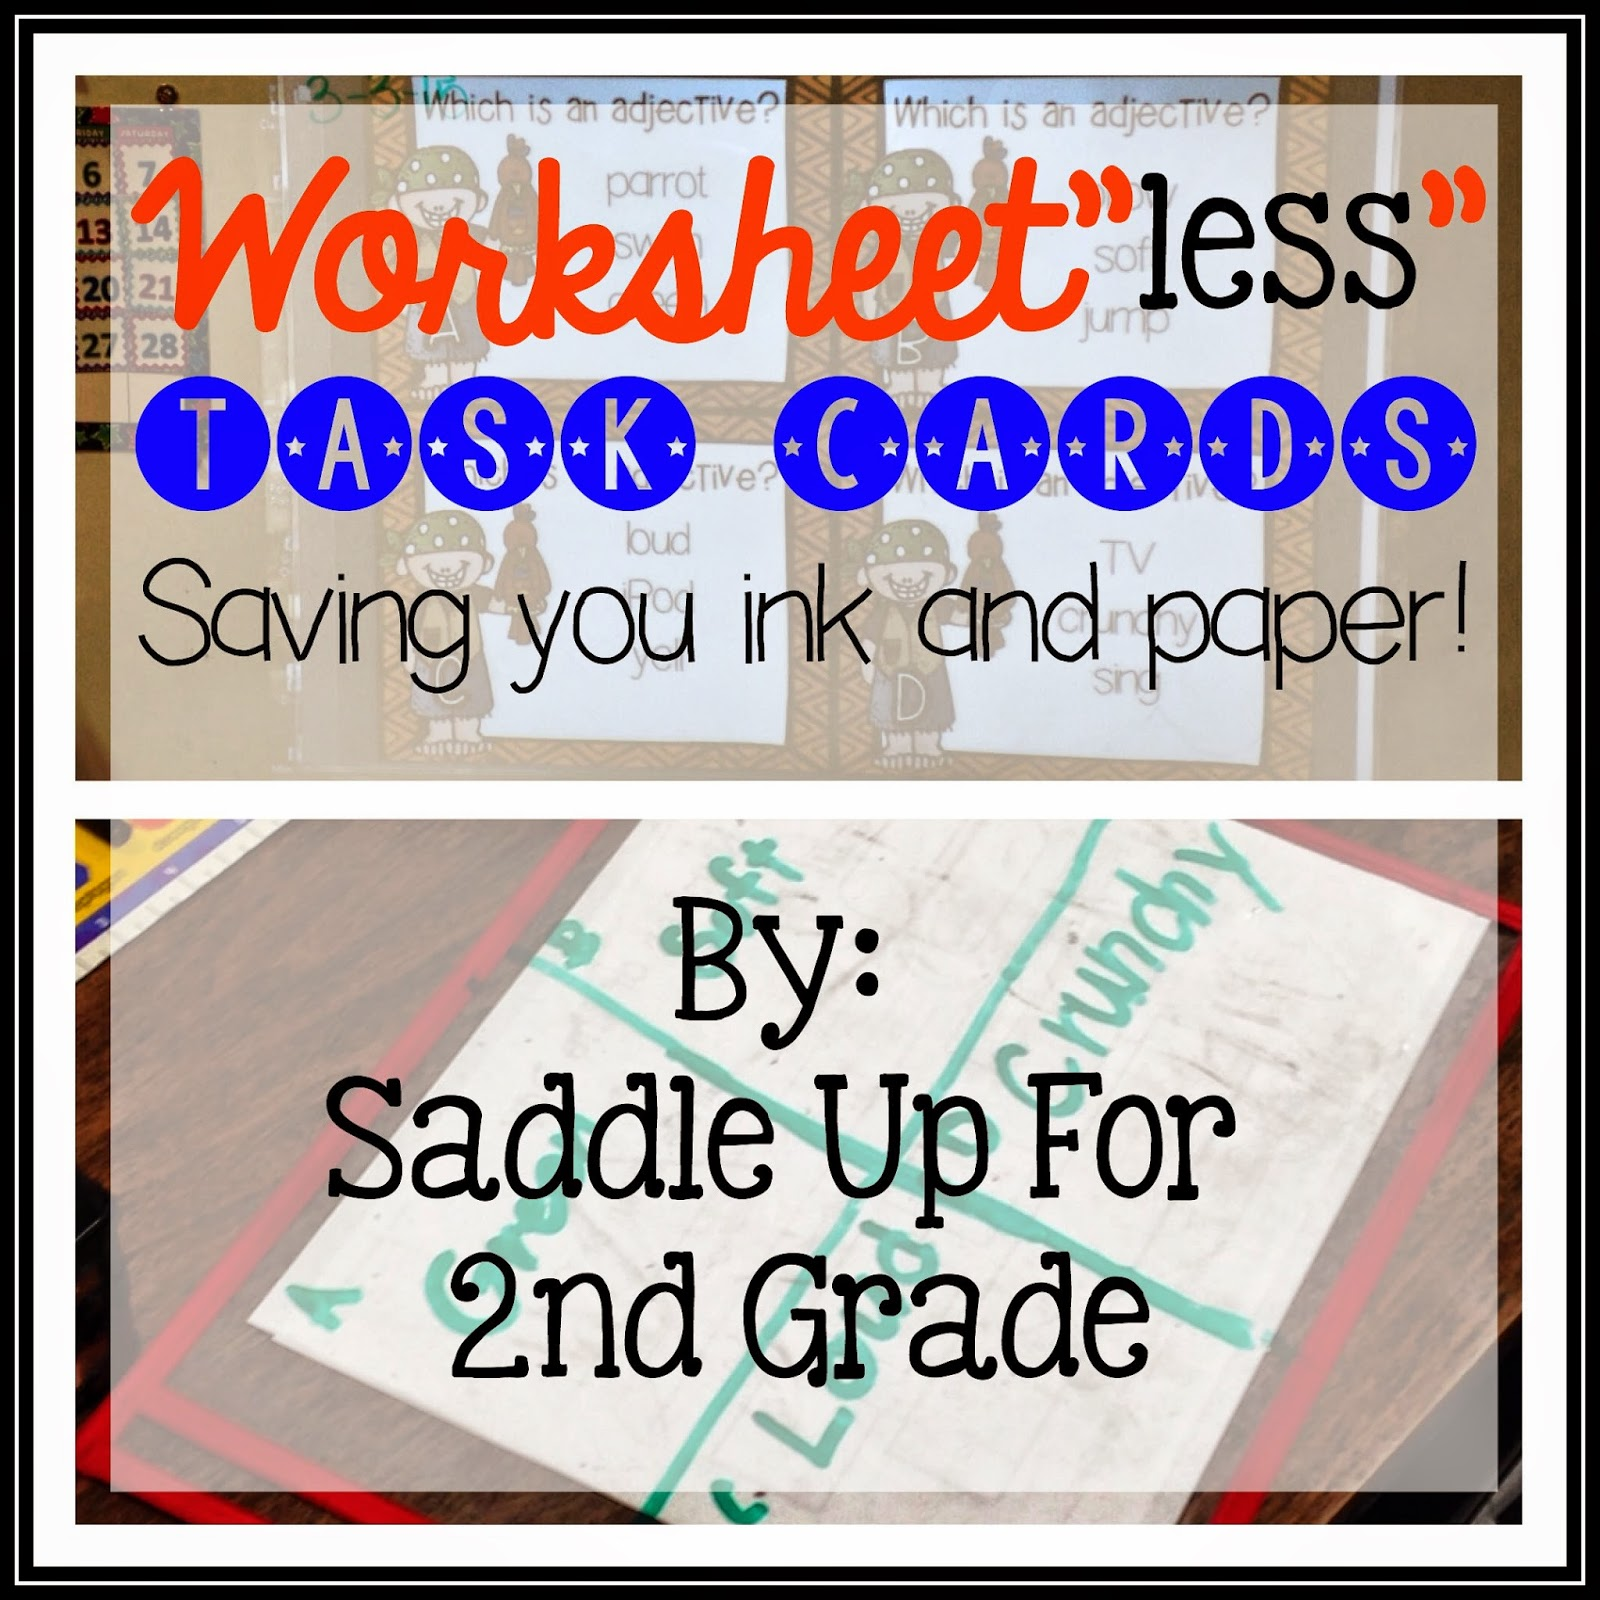 Bright Ideas Worksheet Less Task Cards Saving You Time Ink And Paper